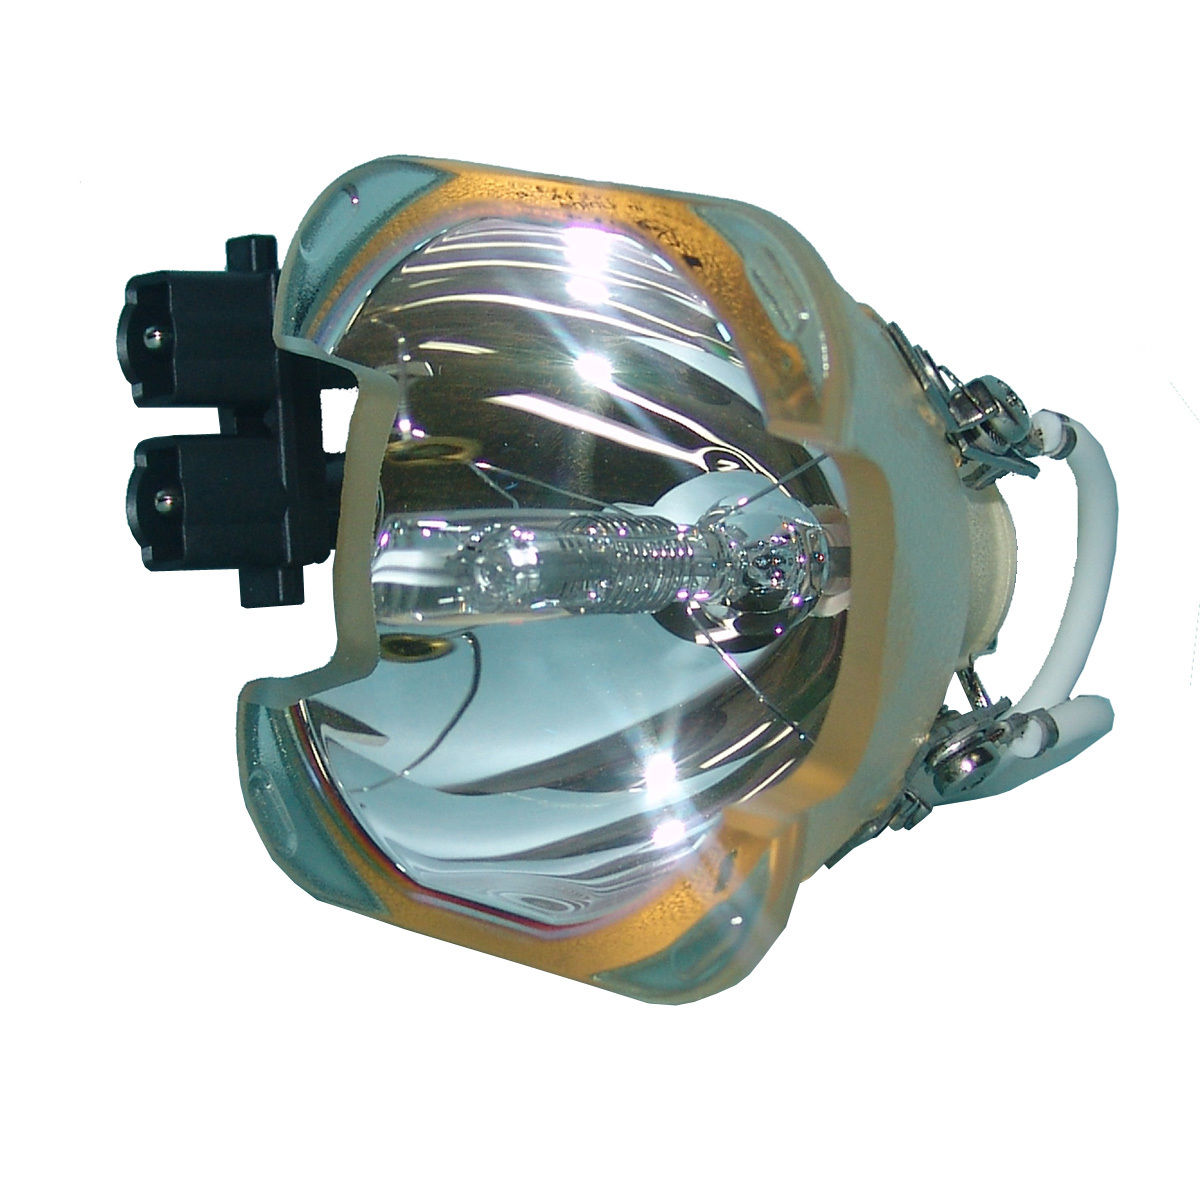 Compatible Bare Bulb BL-FU250A BLFU250A SP.86501.001 for Optoma EP755A / H56A Projector Lamp Bulb without housing